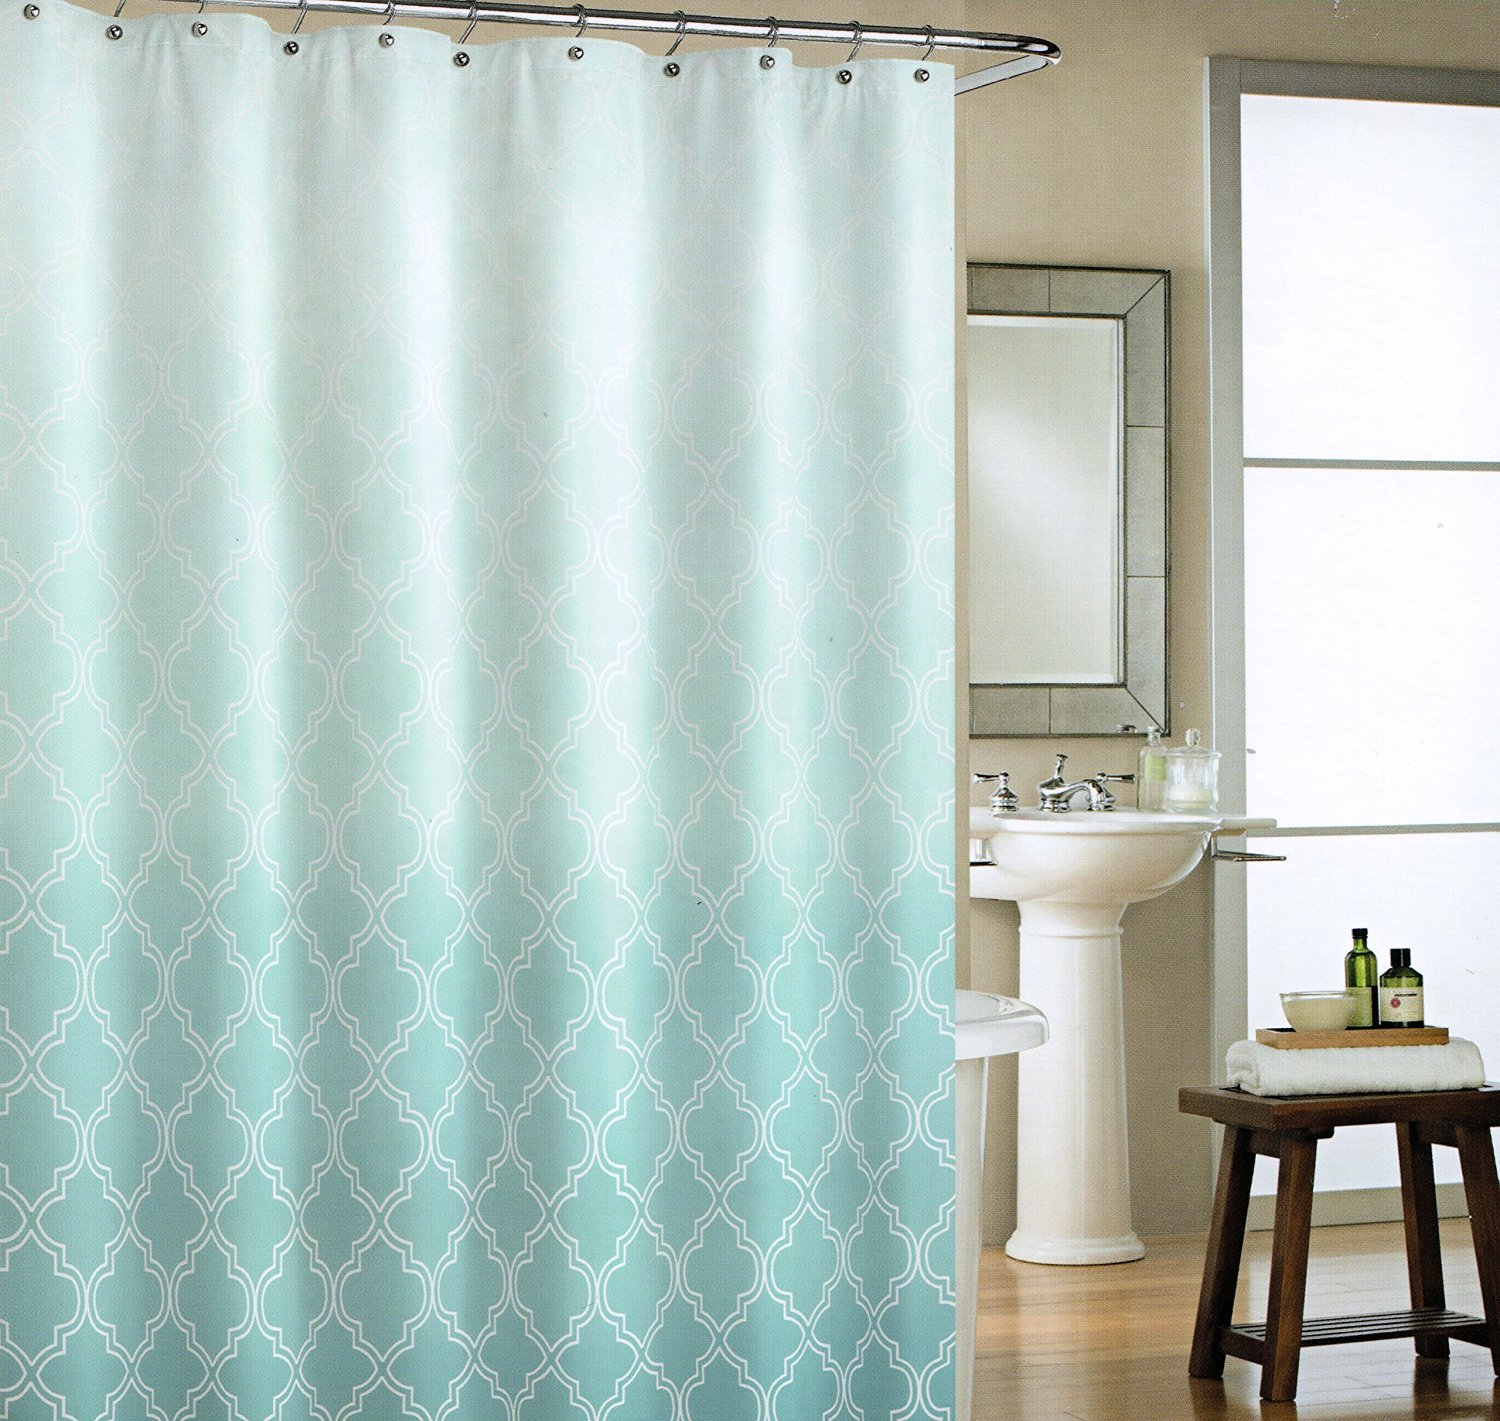 Cynthia Rowley Classic Moroccan Tile Quatrefoil Ombre Turquoise Blue White  Fabric Shower Curtain Bracket Lattice